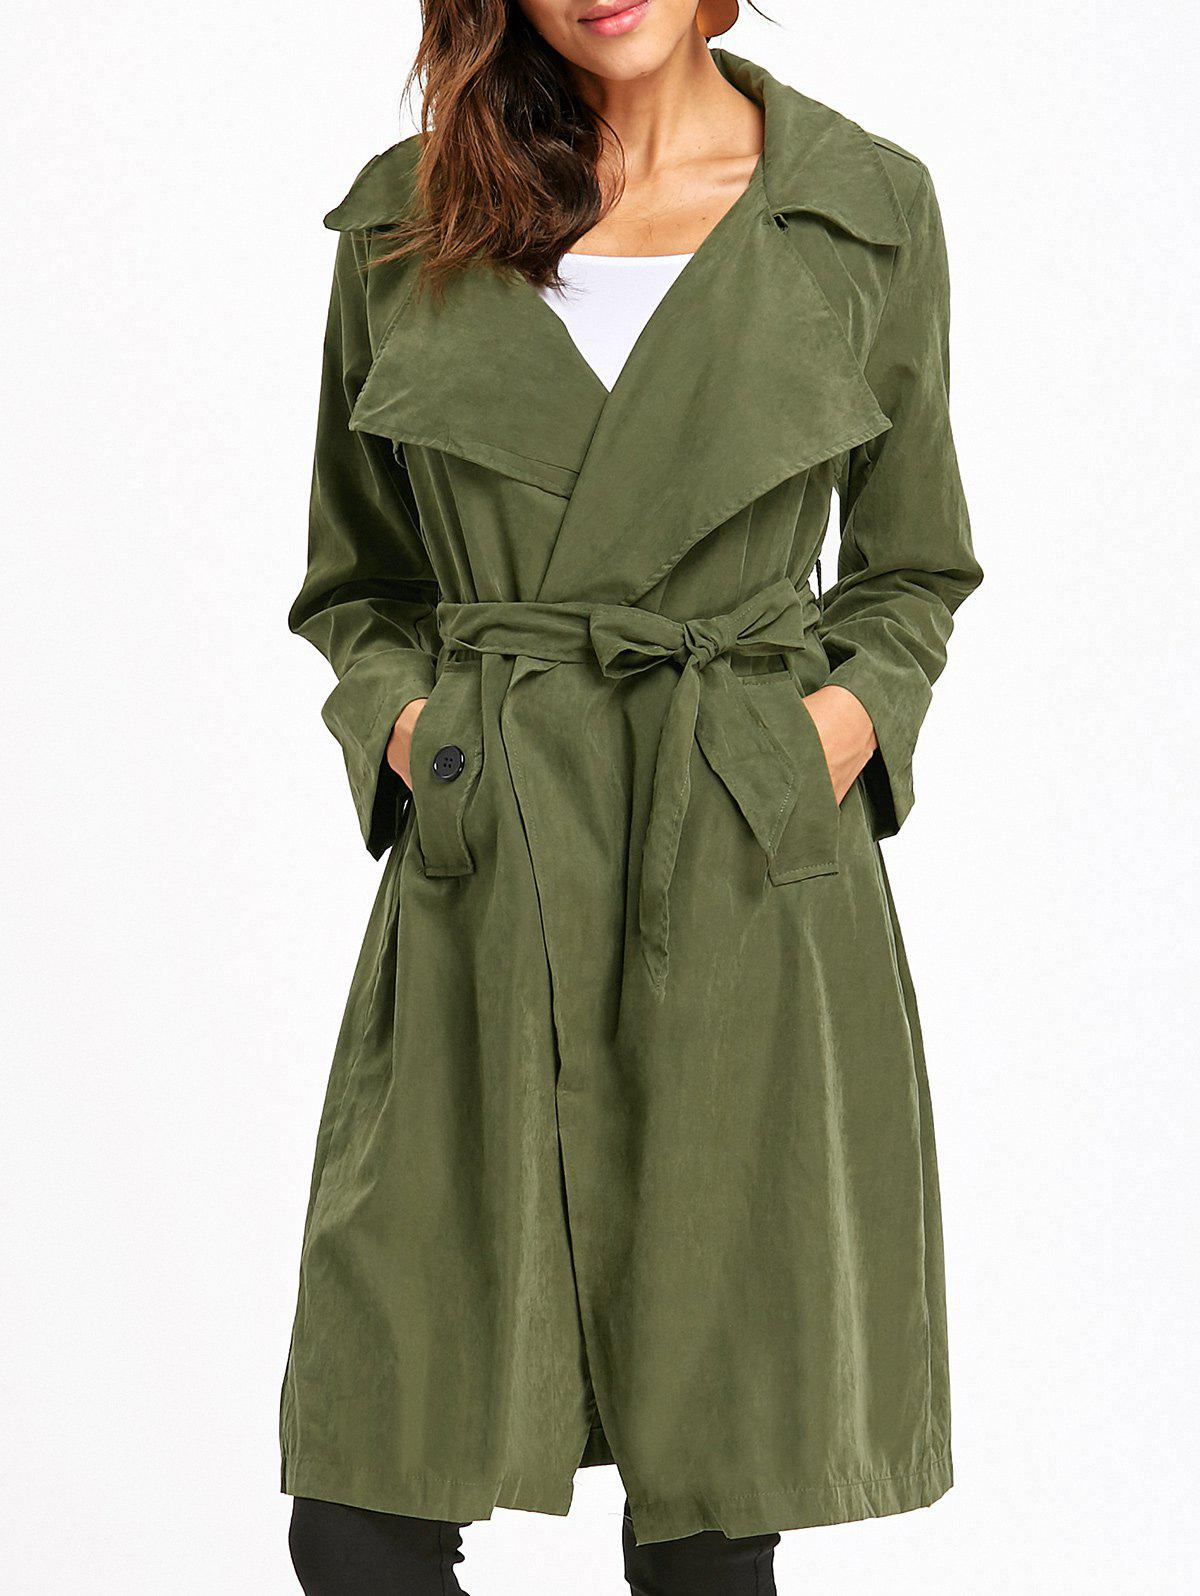 Back Slit Wrap Trench CoatWOMEN<br><br>Size: 2XL; Color: ARMY GREEN; Clothes Type: Trench; Material: Polyester; Type: Slim; Shirt Length: Long; Sleeve Length: Full; Collar: Lapel; Pattern Type: Solid; Style: Fashion; Season: Fall,Spring; With Belt: Yes; Weight: 0.4000kg; Package Contents: 1 x Coat  1 x Belt;